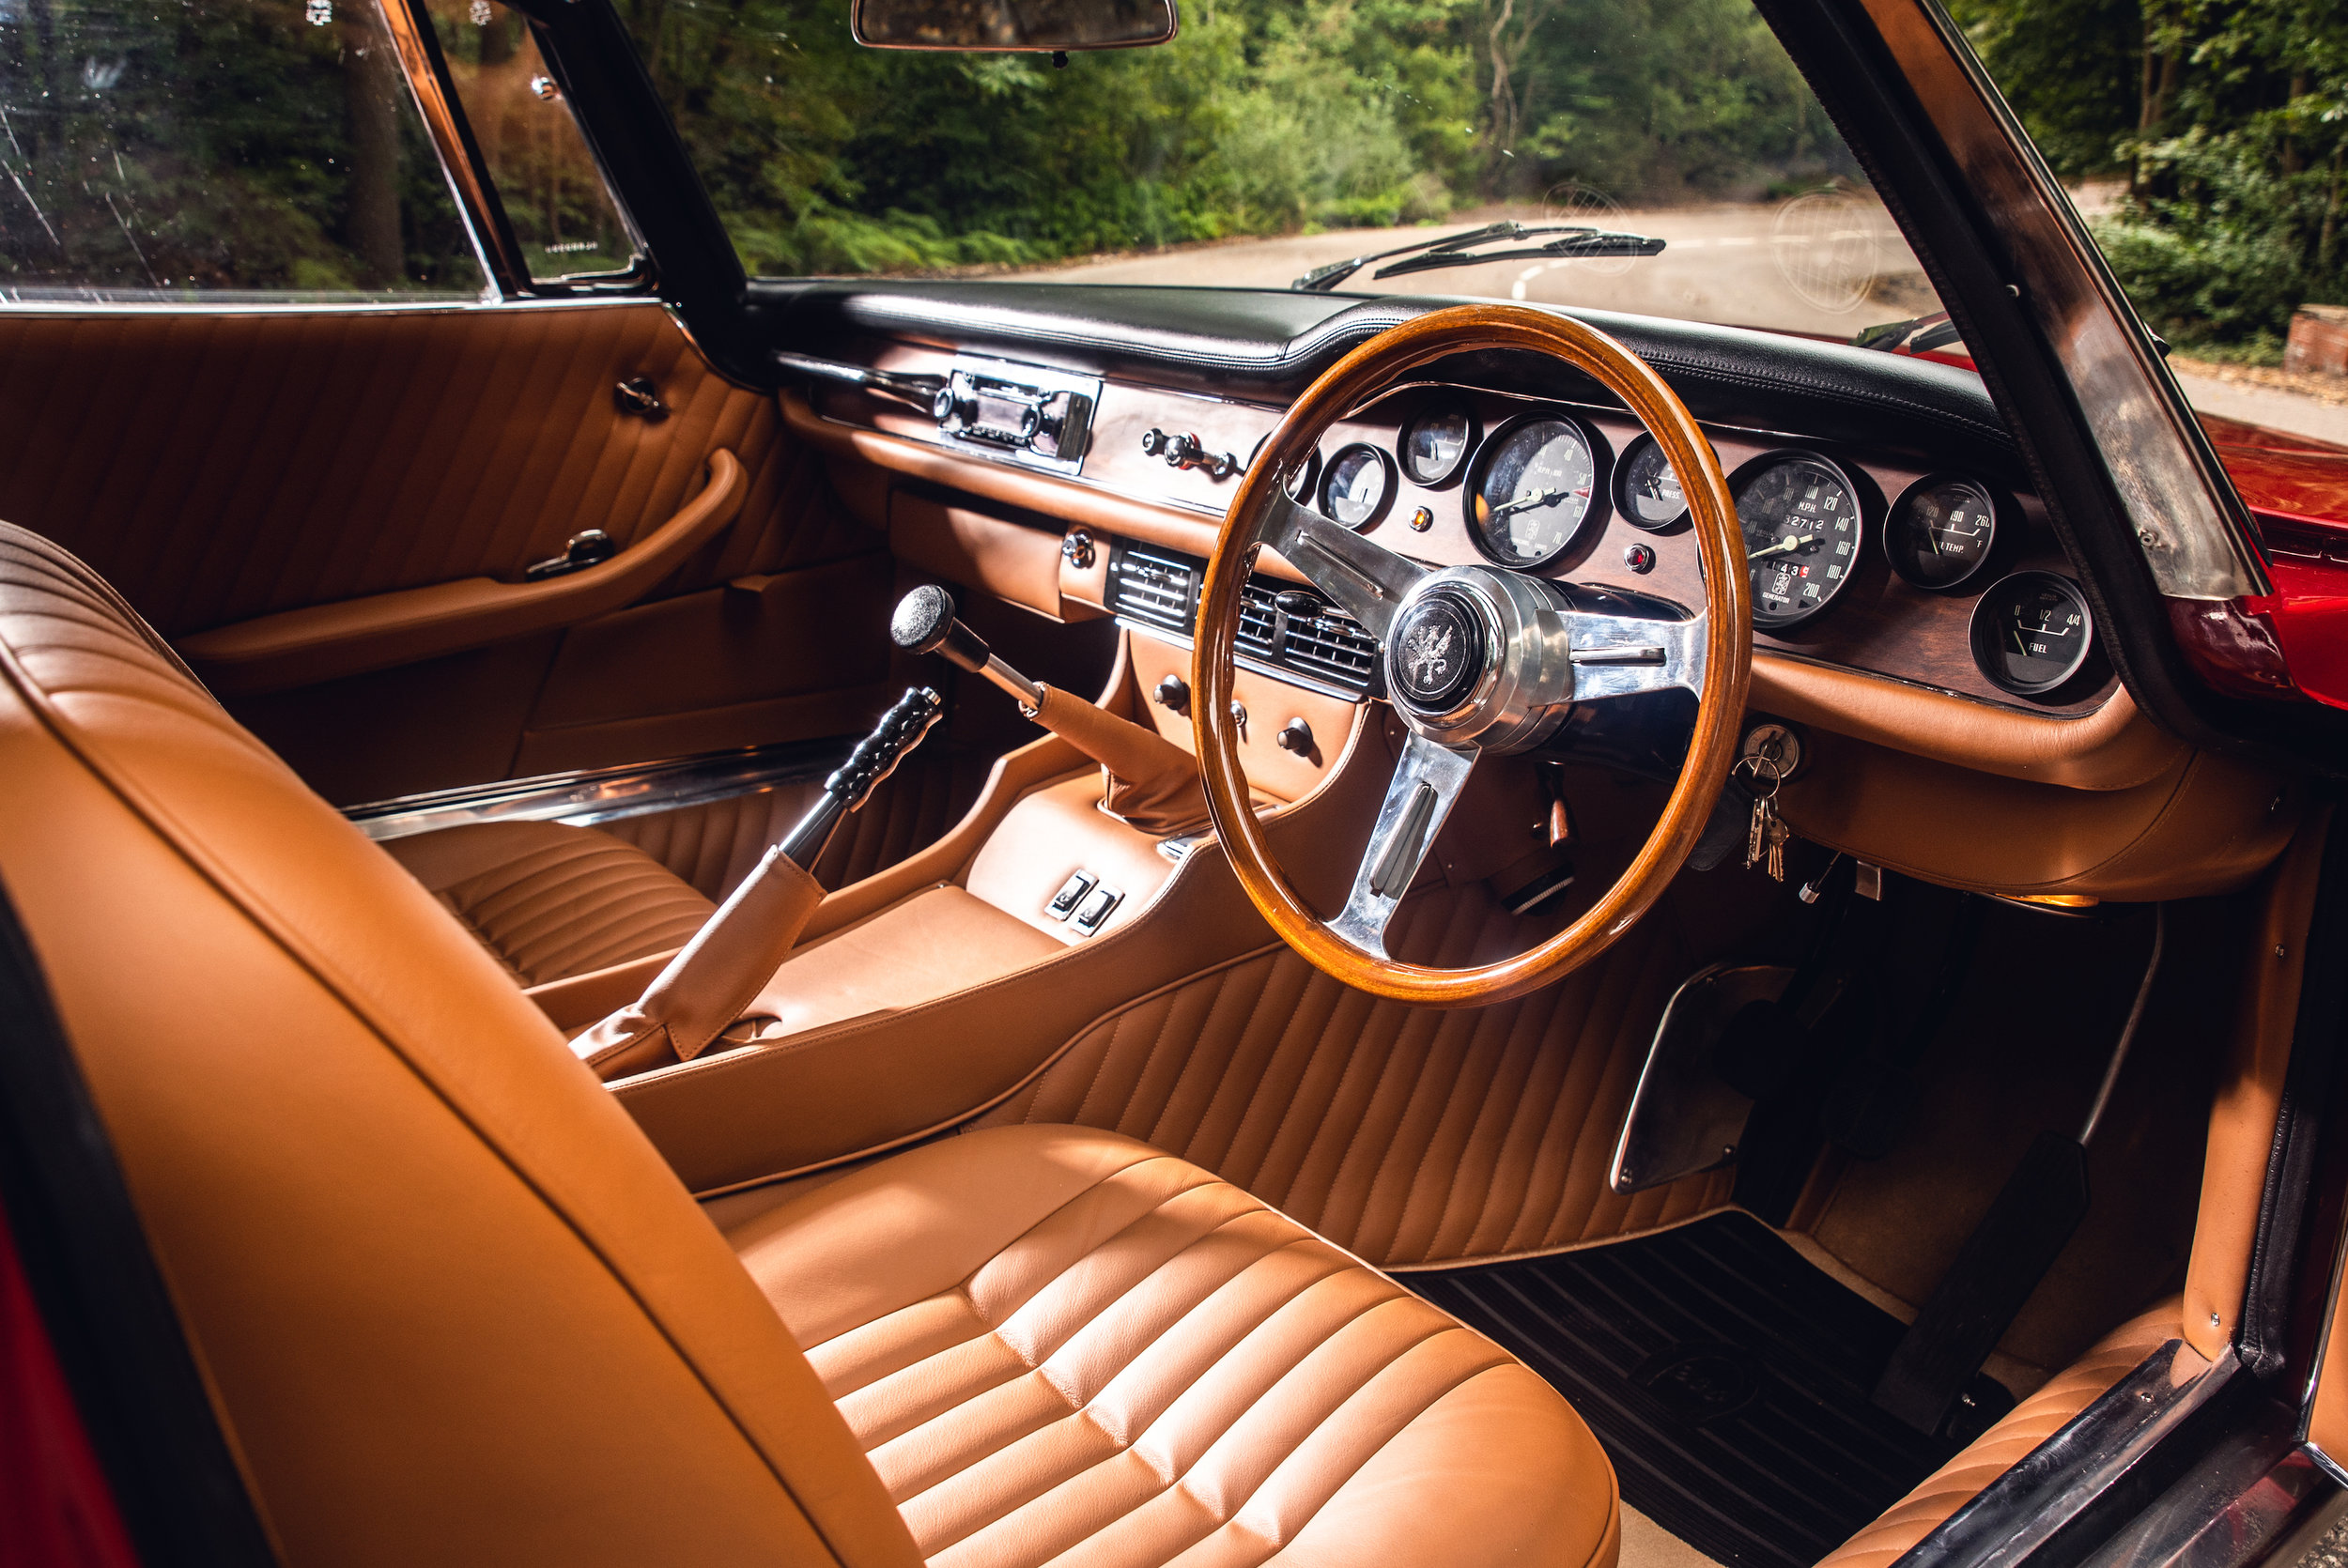 Iso Grifo MK2 Interior. Photo by   JAYSON FONG